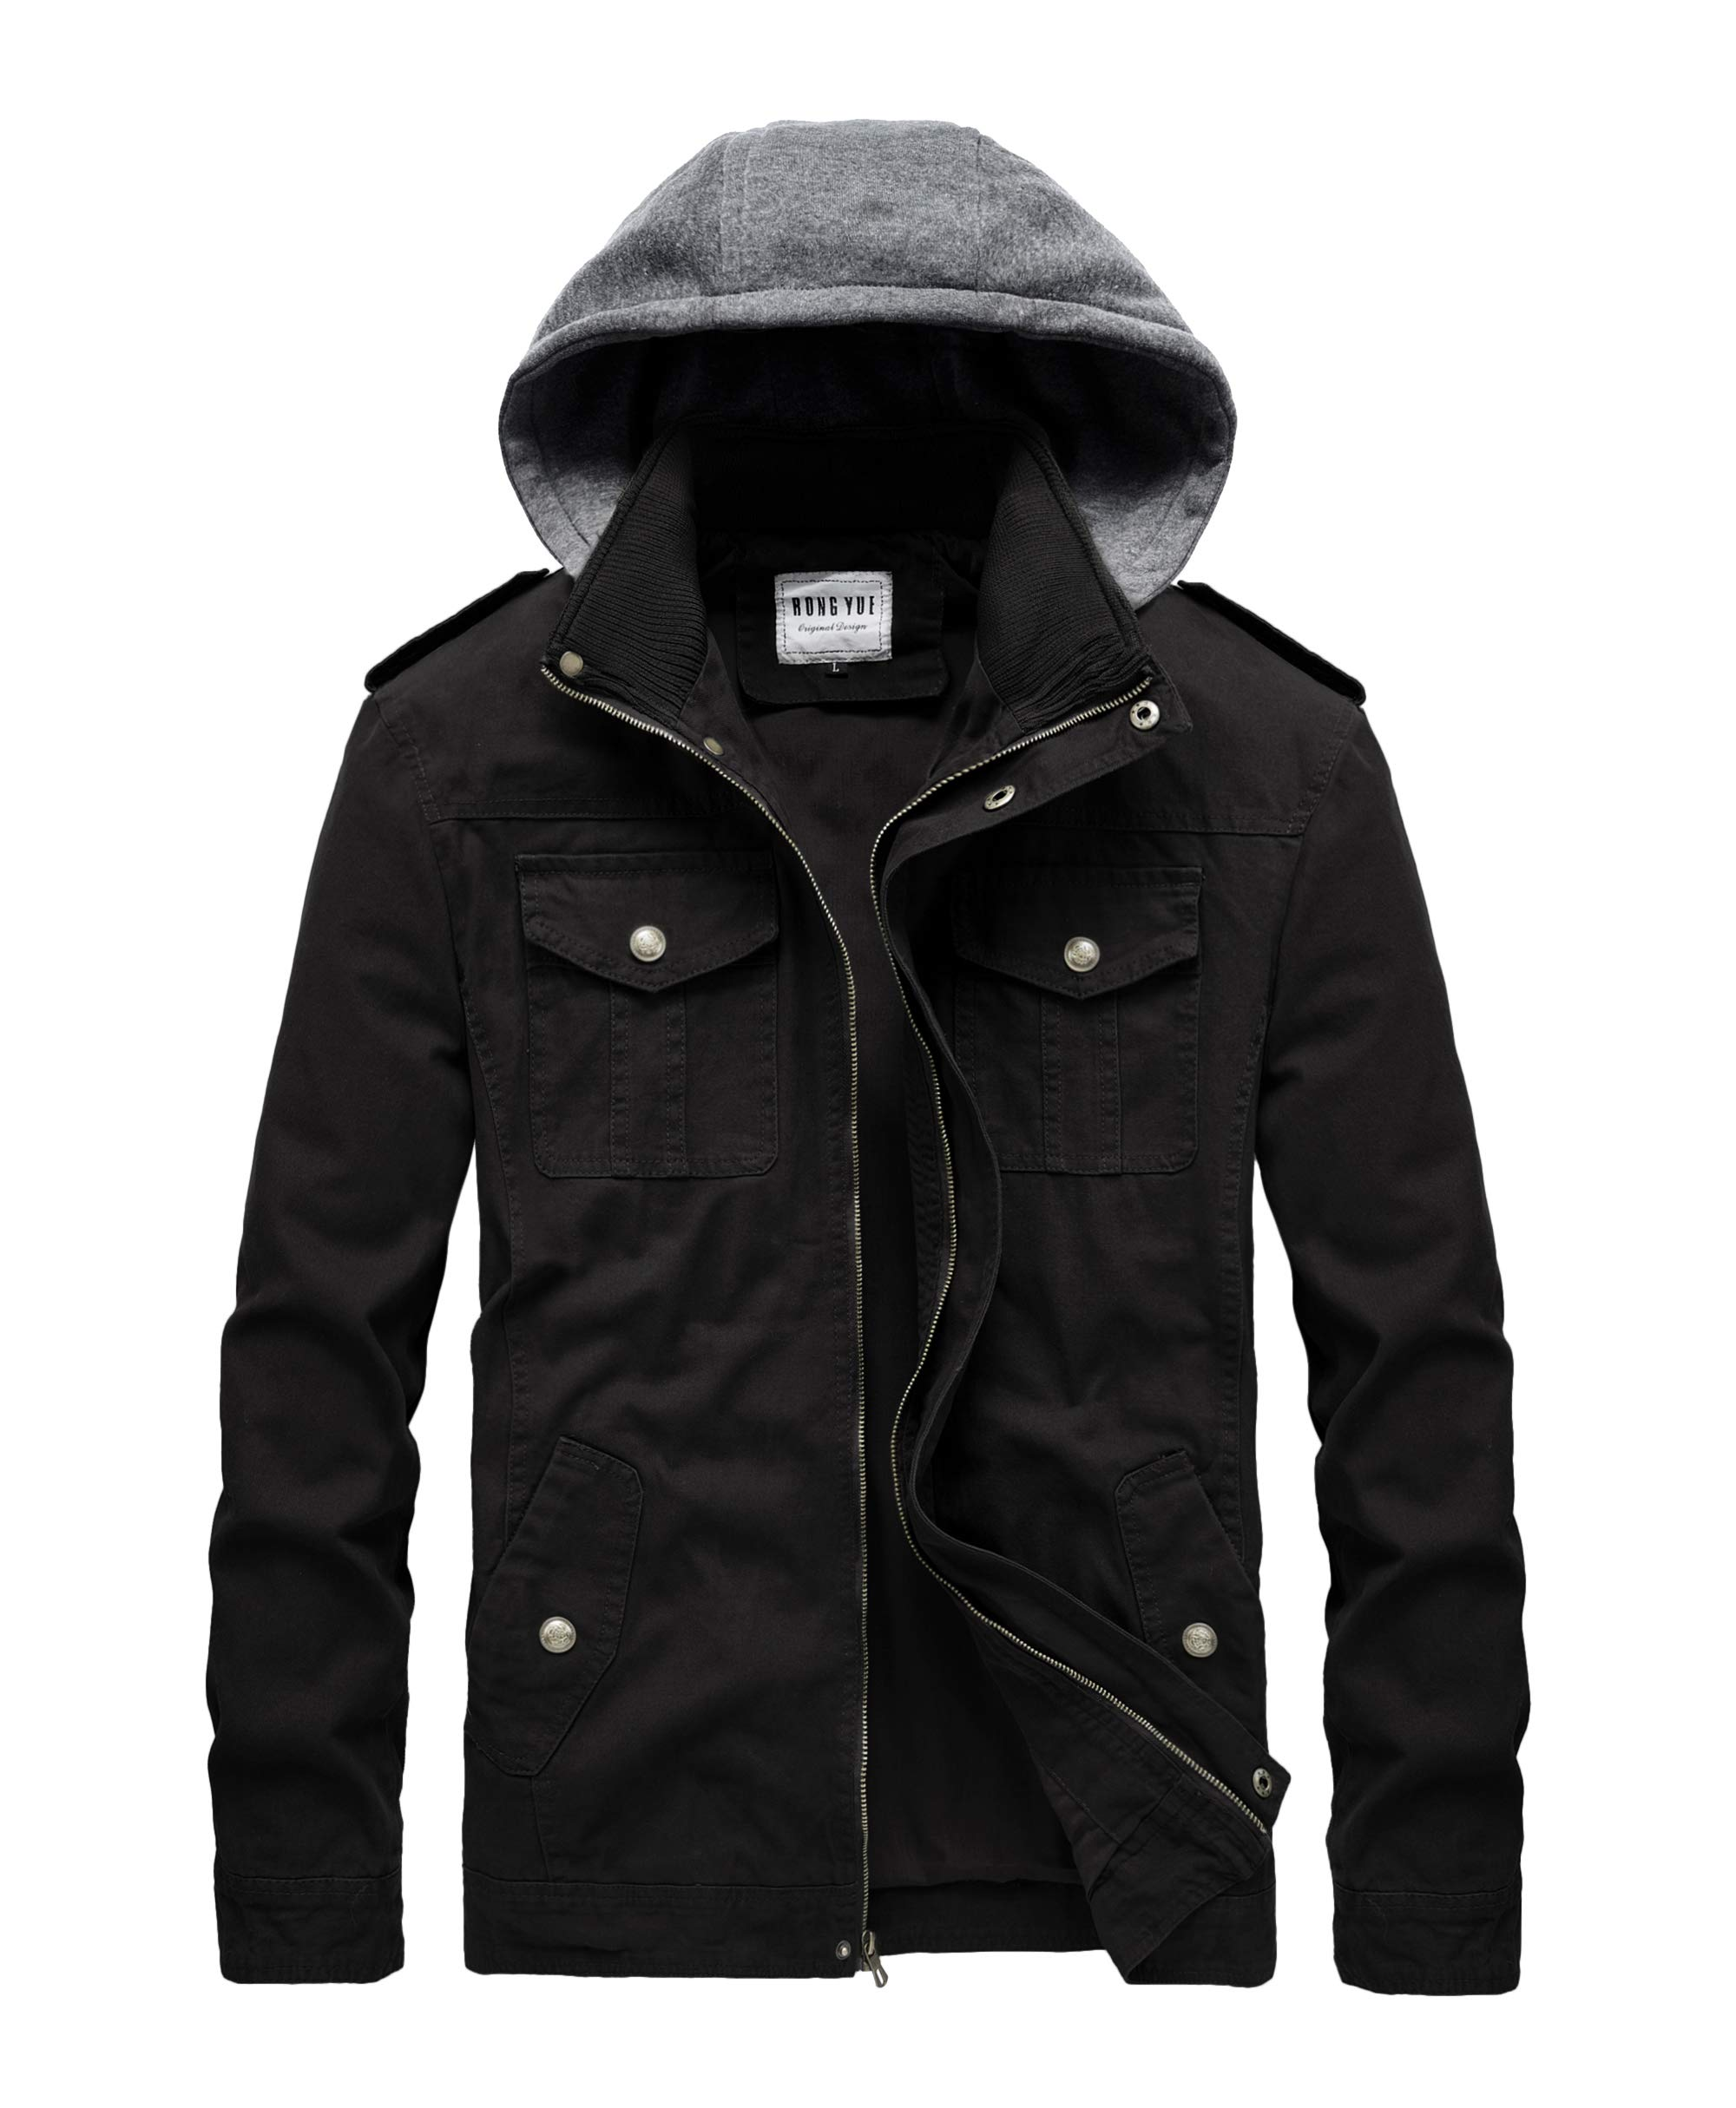 RongYue Men's Casual Cotton Military Jacket with Removable Hood Black by RongYue